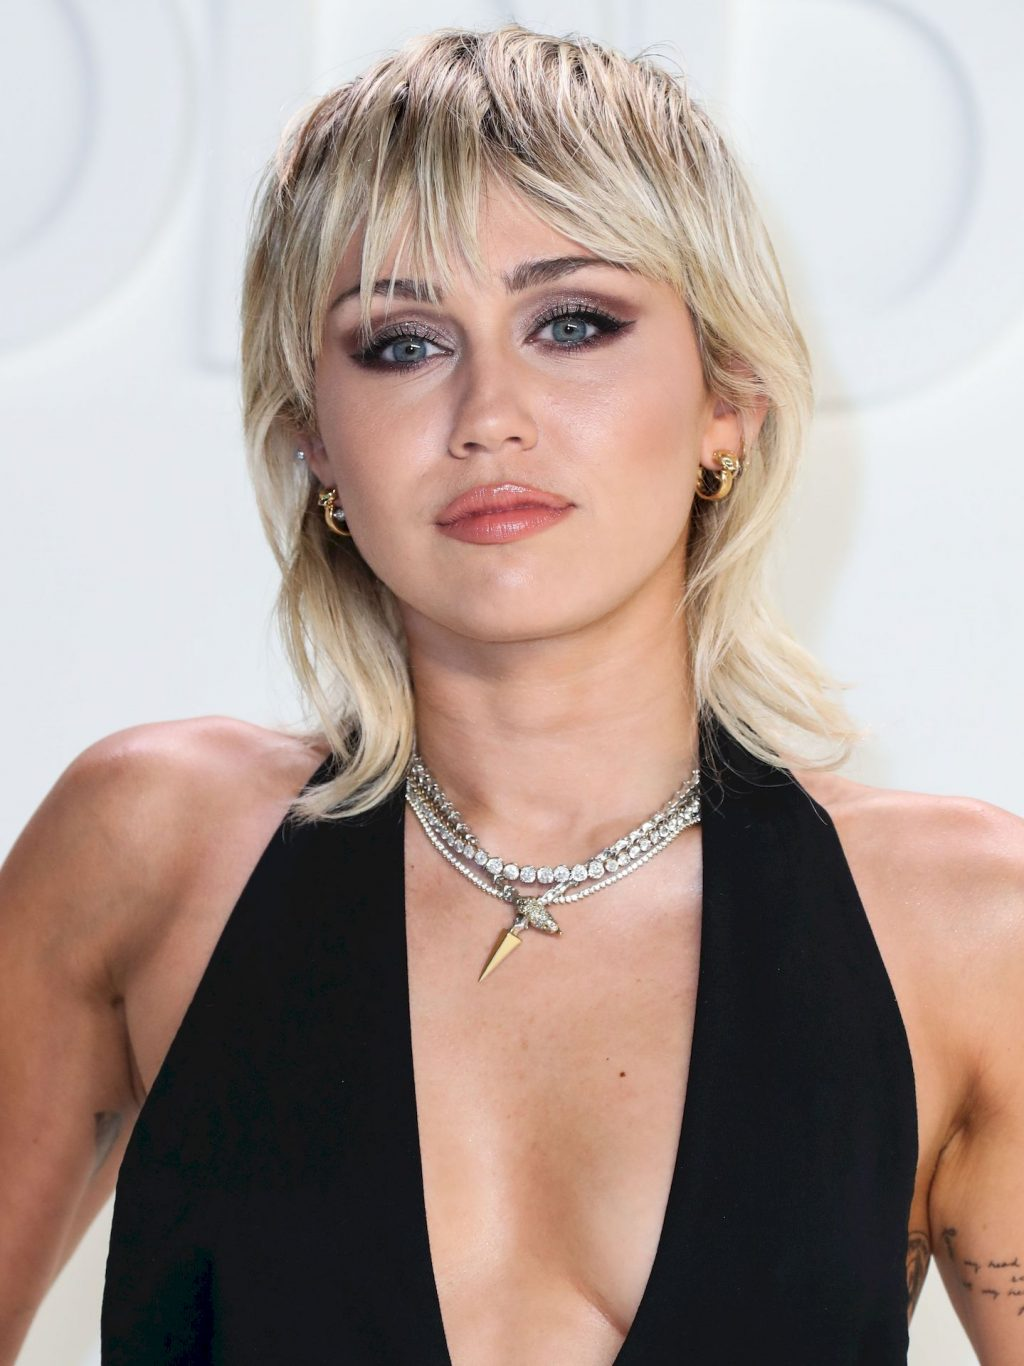 Miley Cyrus Looks Sexy at the Tom Ford Autumn/Winter 2020 Fashion Show (93 Photos)